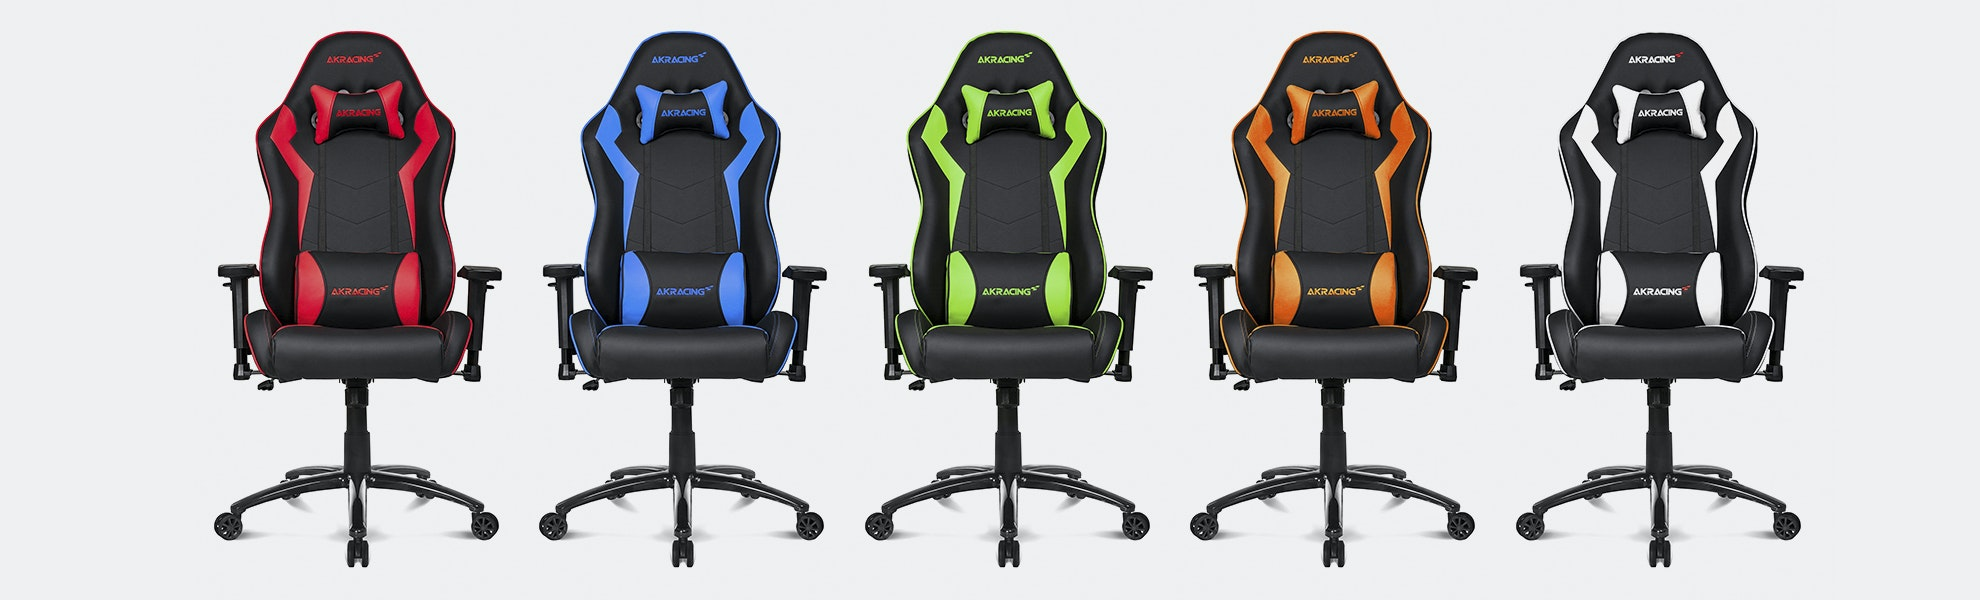 AKRacing Octane & Nitro Gaming Chairs - Last Chance